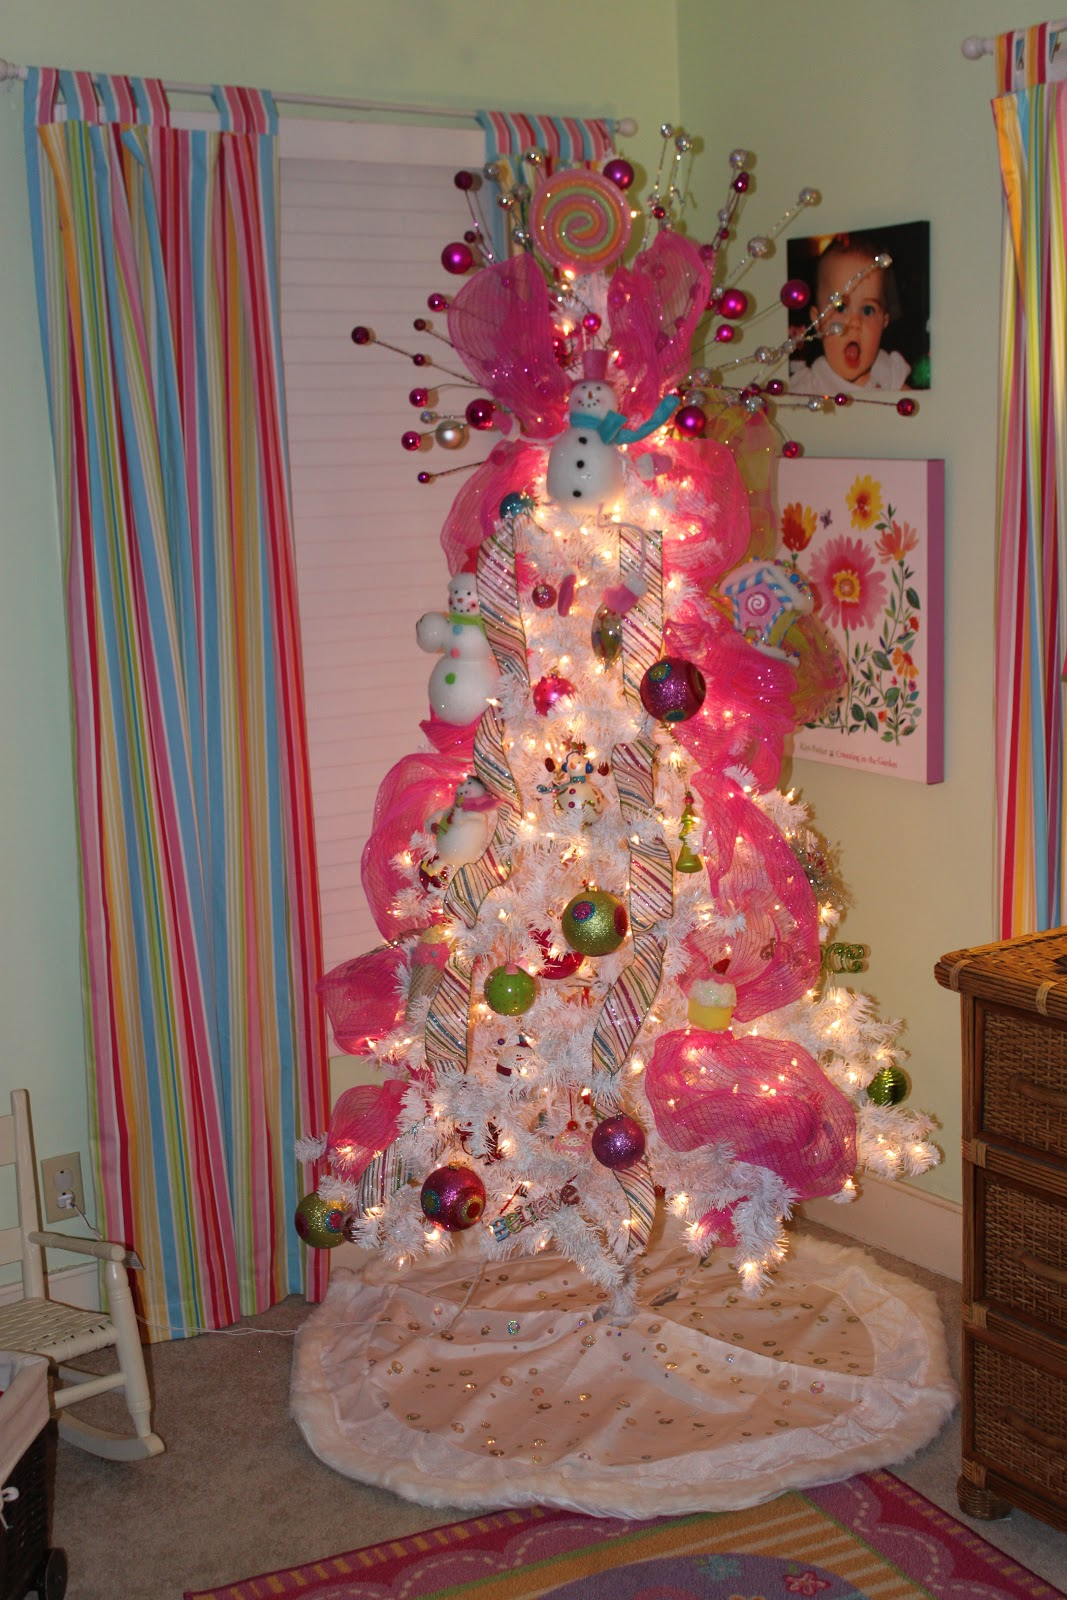 Christmas Decorations Living Room 38 Girly Christmas Tree Decorations Ideas - Decoration Love